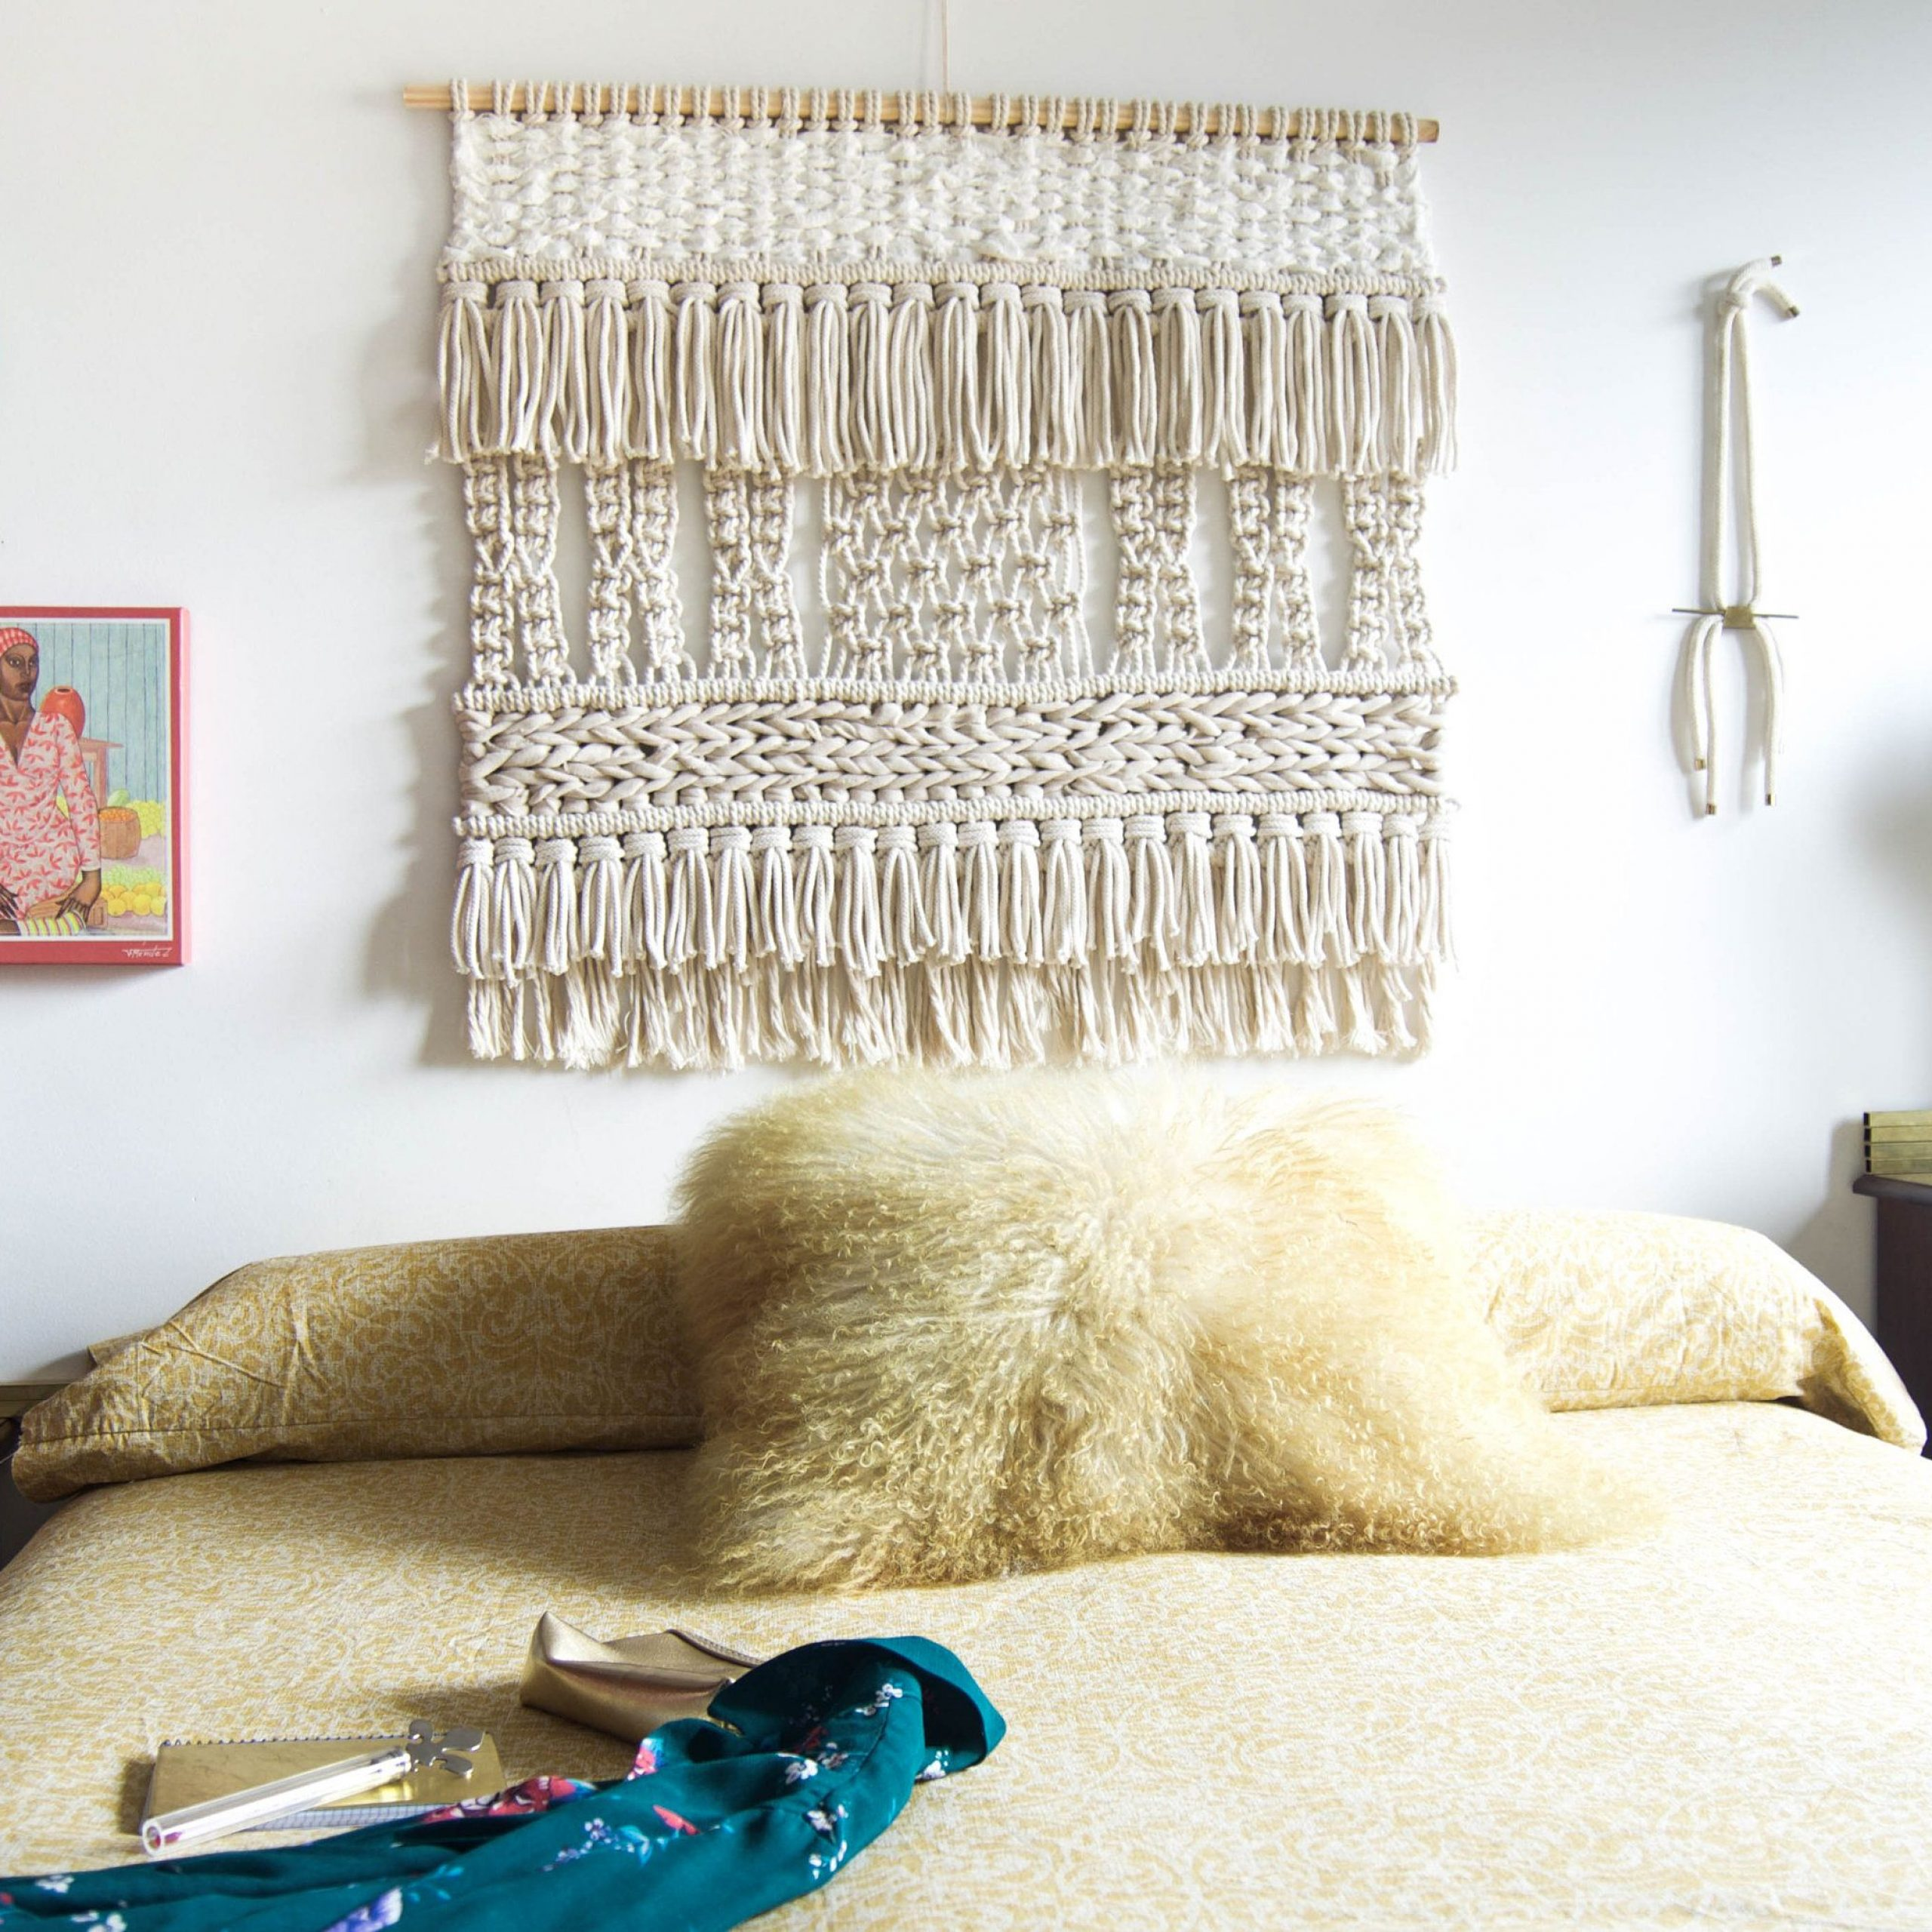 Neutral Tropical Macrame Wall Artranran Design Pertaining To 2018 Blended Fabric Trust In The Lord Tapestries And Wall Hangings (View 4 of 20)